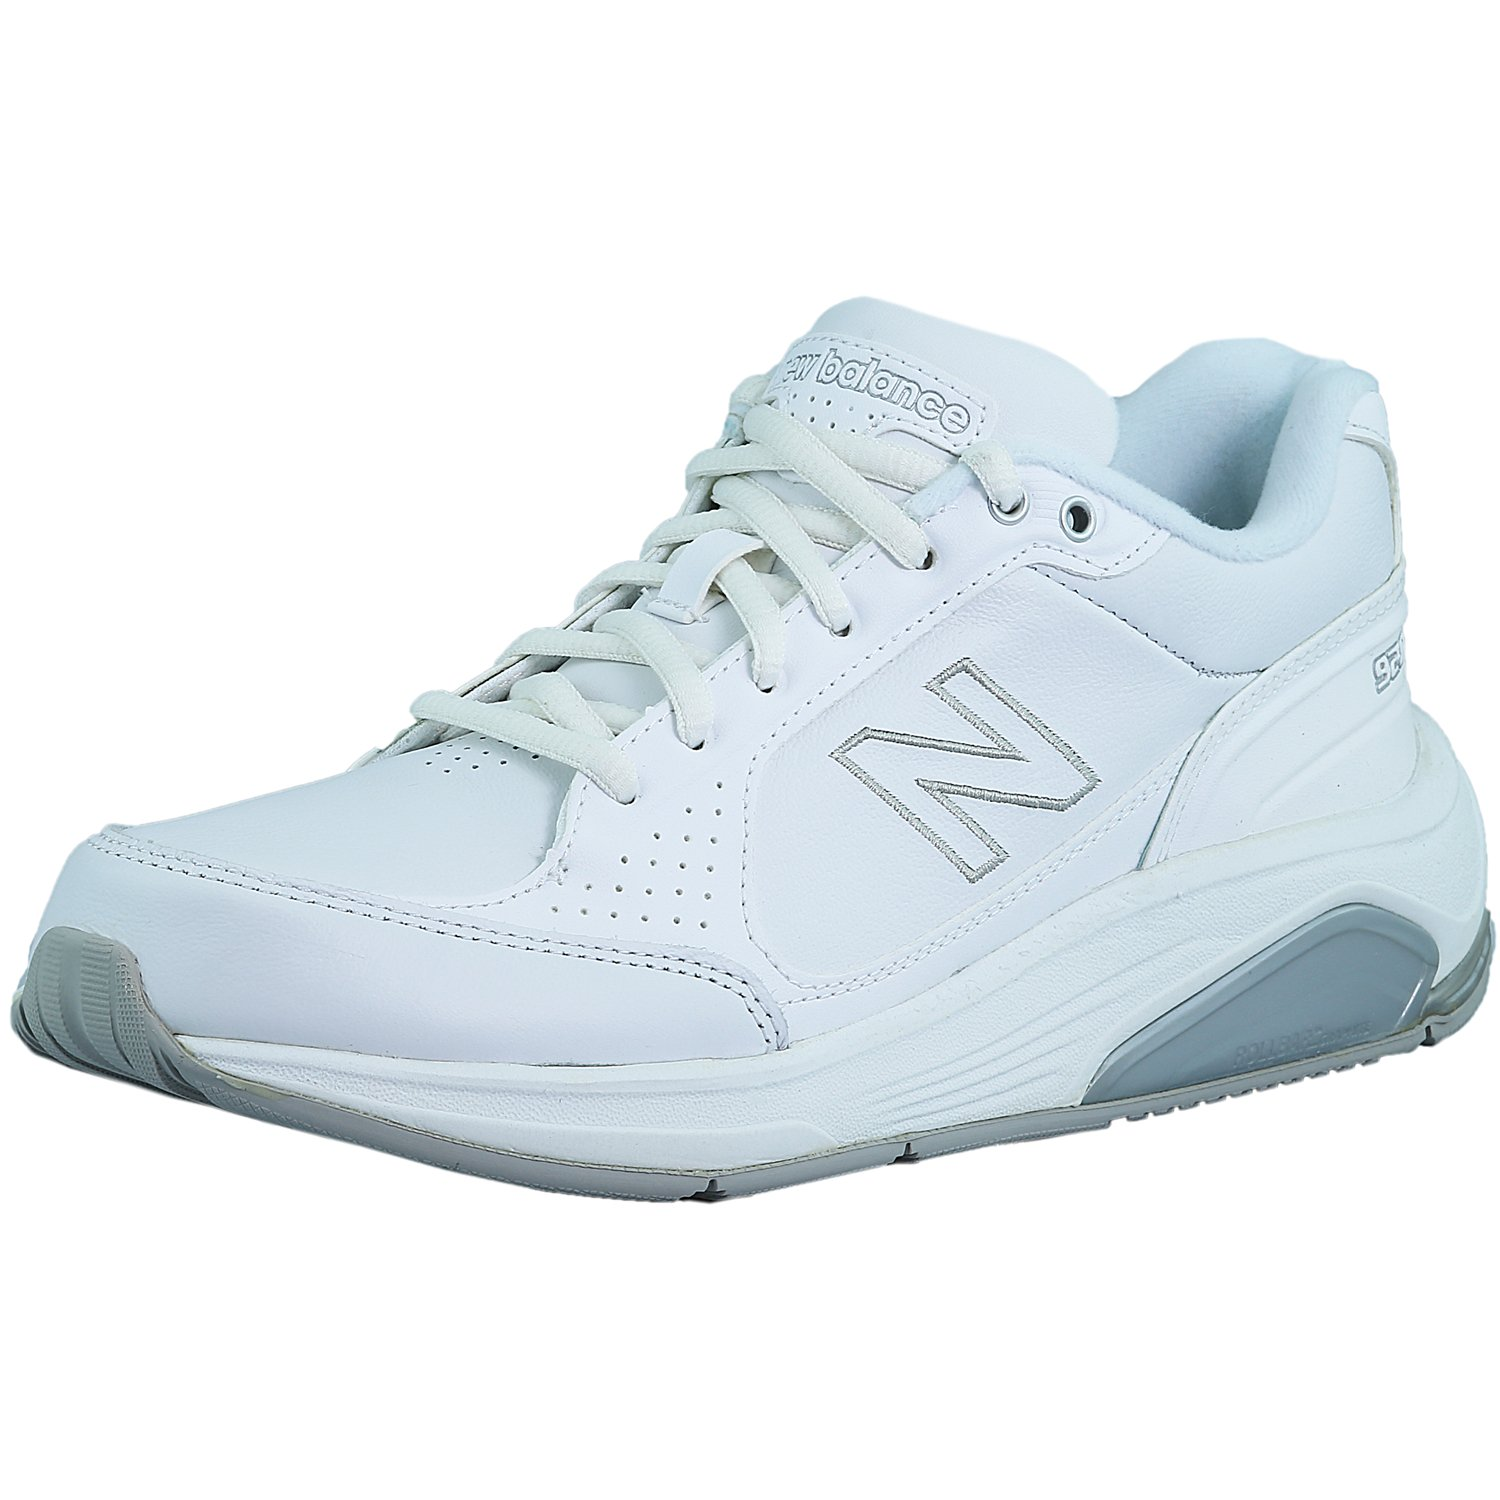 New Balance Women's Ww928 Wt Ankle-High Leather Walking S...